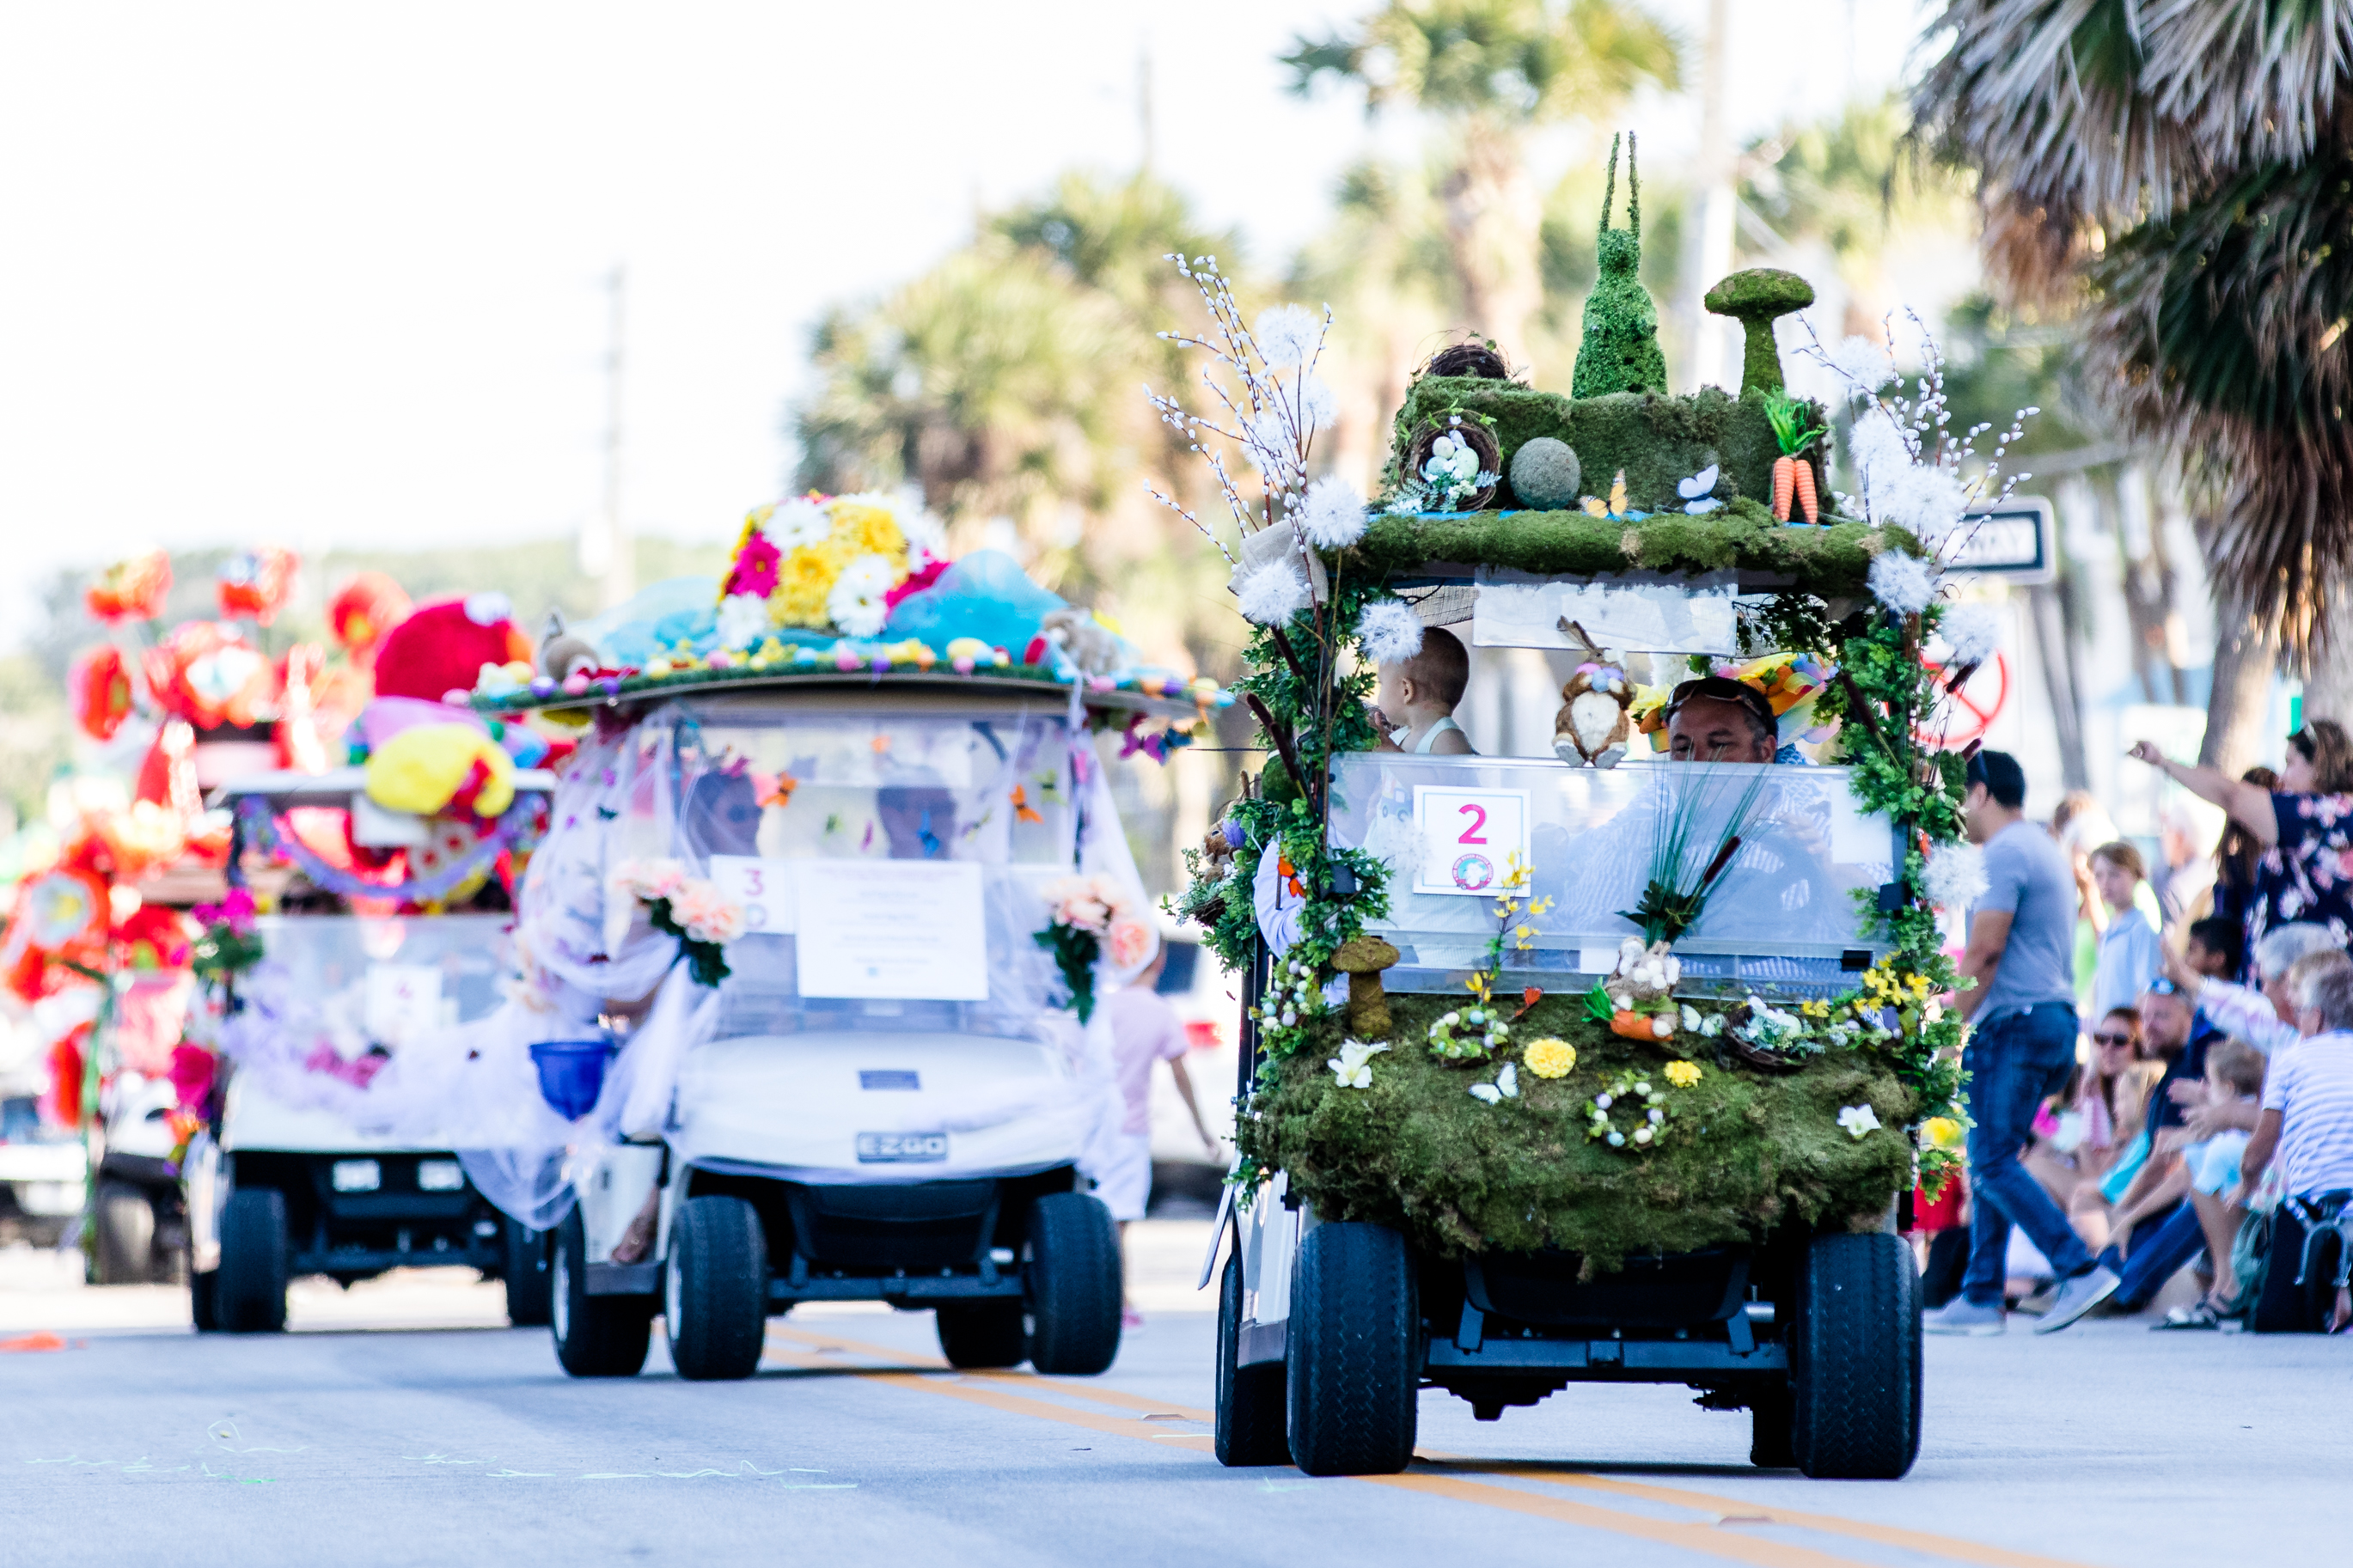 Golf carts on parade covered in flowers and greenery